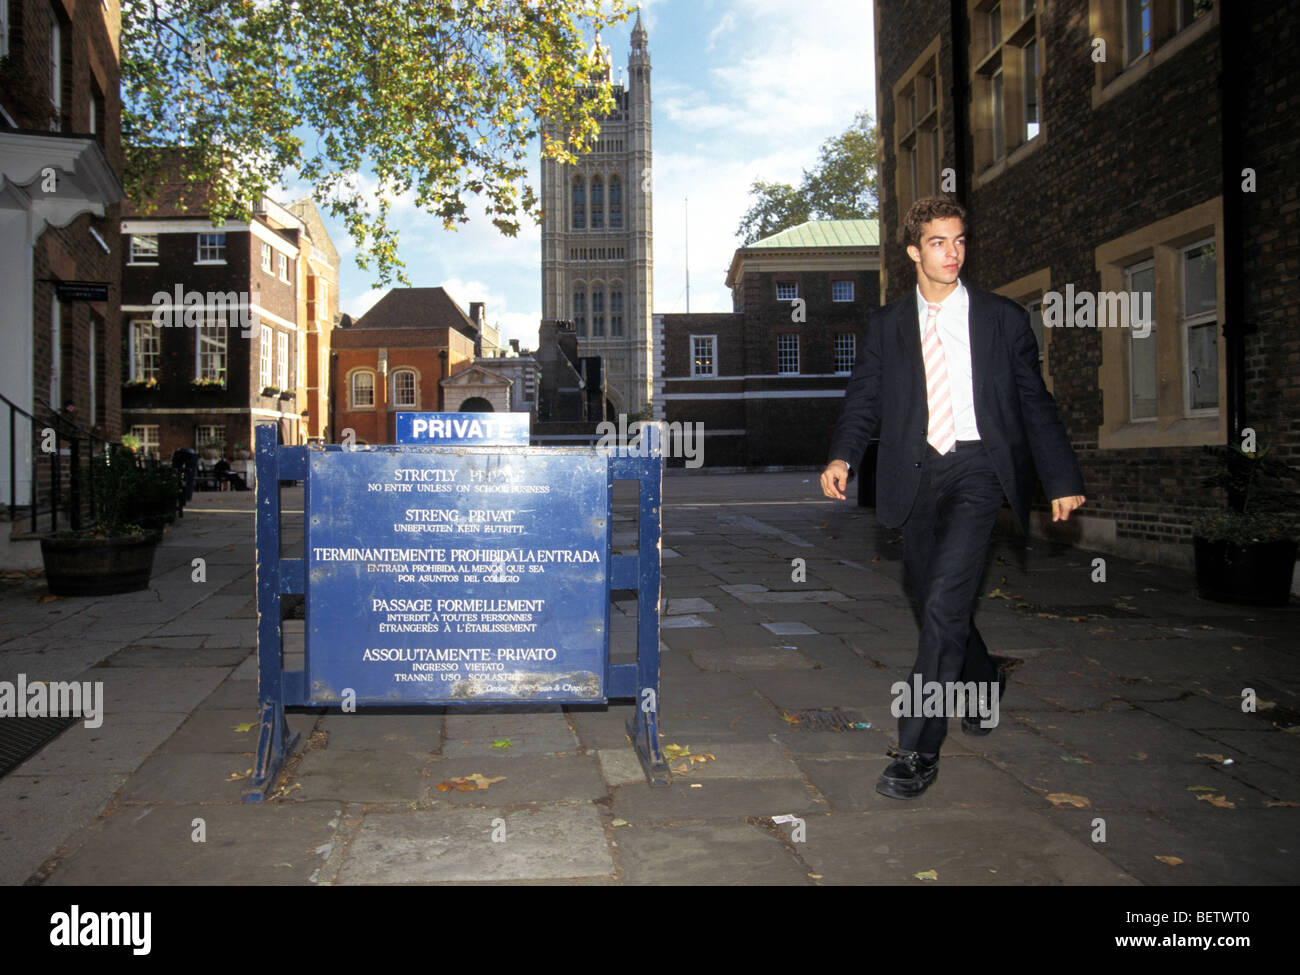 Westminster private school, London UK - Stock Image